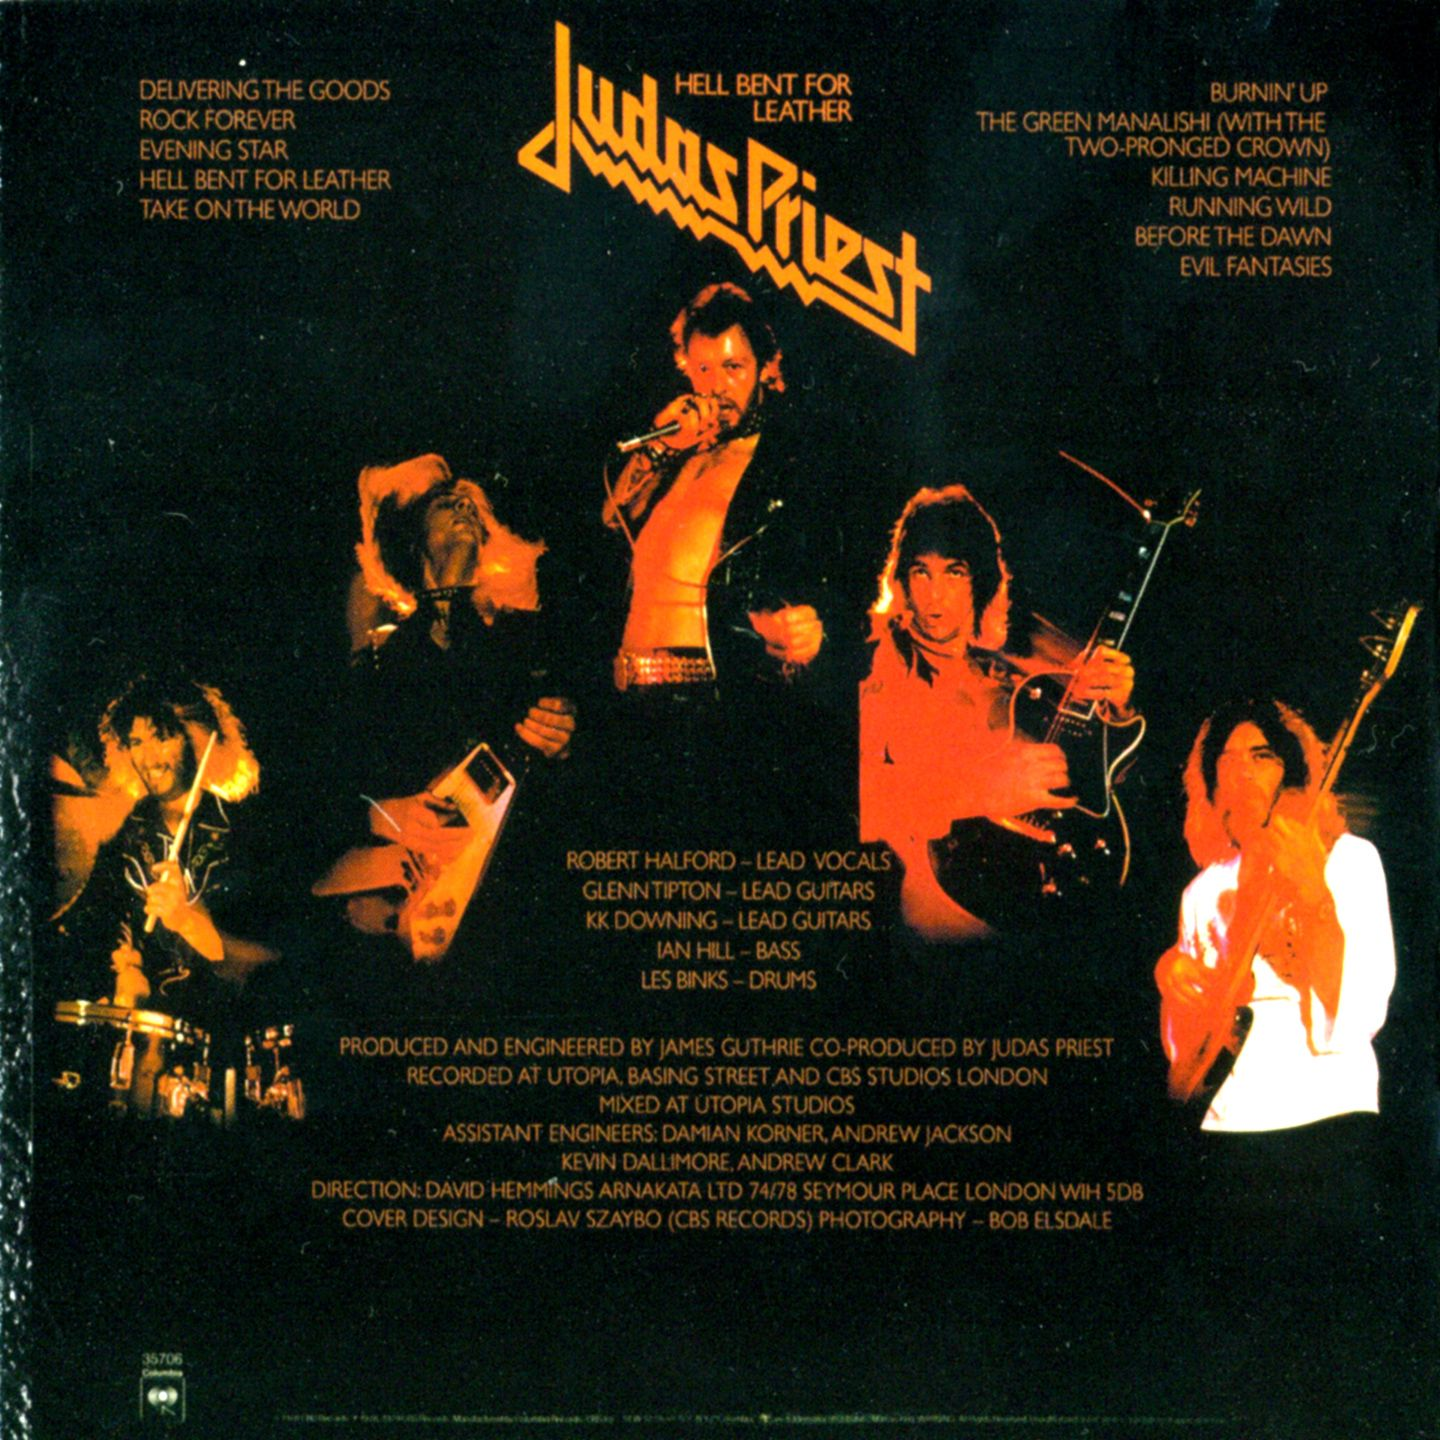 JUDAS PRIEST HELL BENT FOR LEATHER One Fashion change makes history